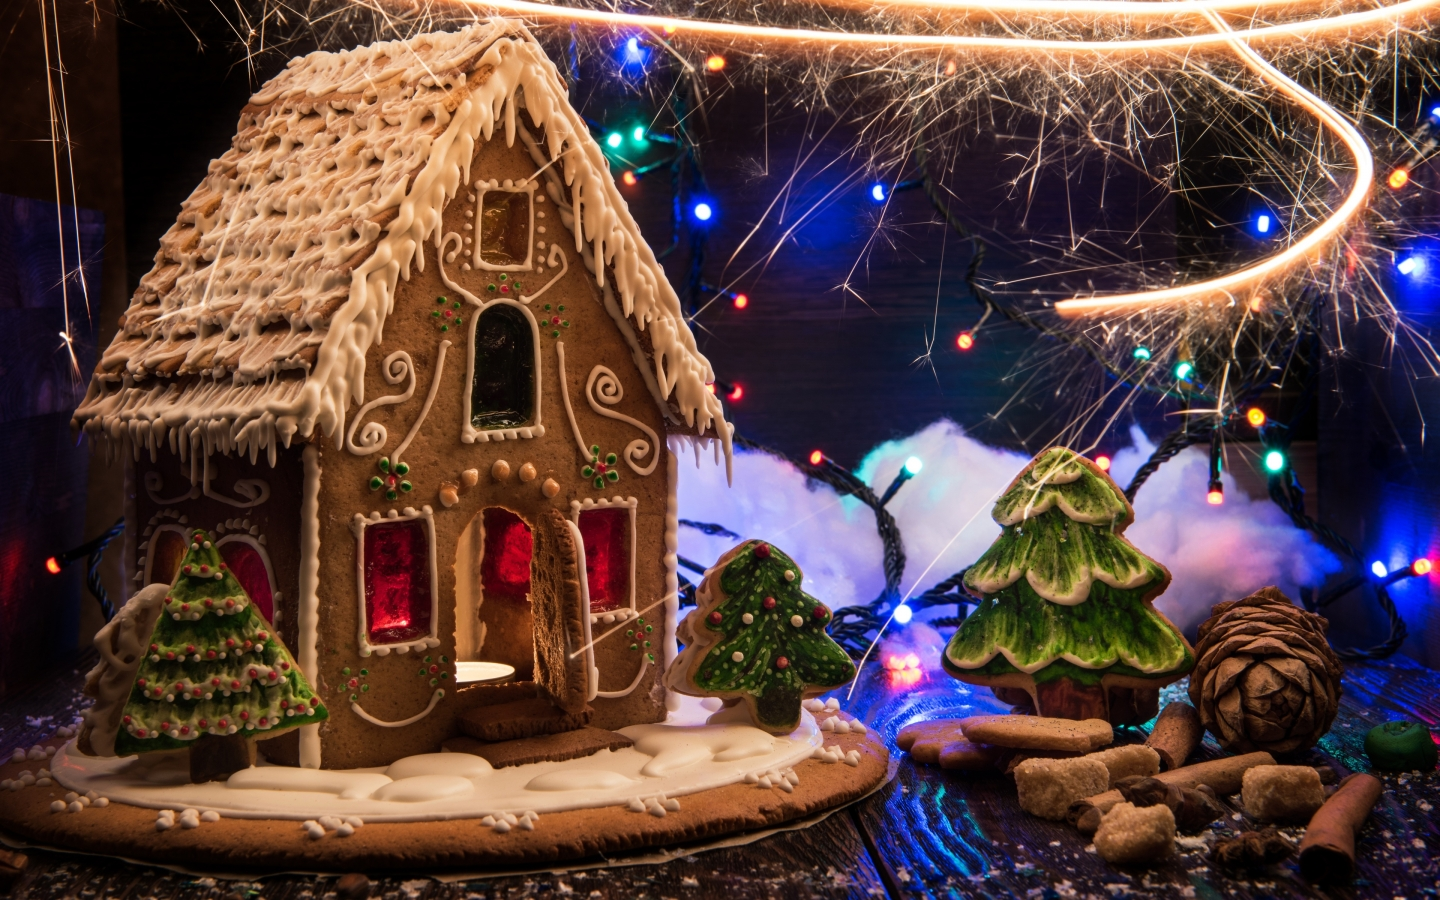 Christmas Gingerbread Decorations for 1440 x 900 widescreen resolution